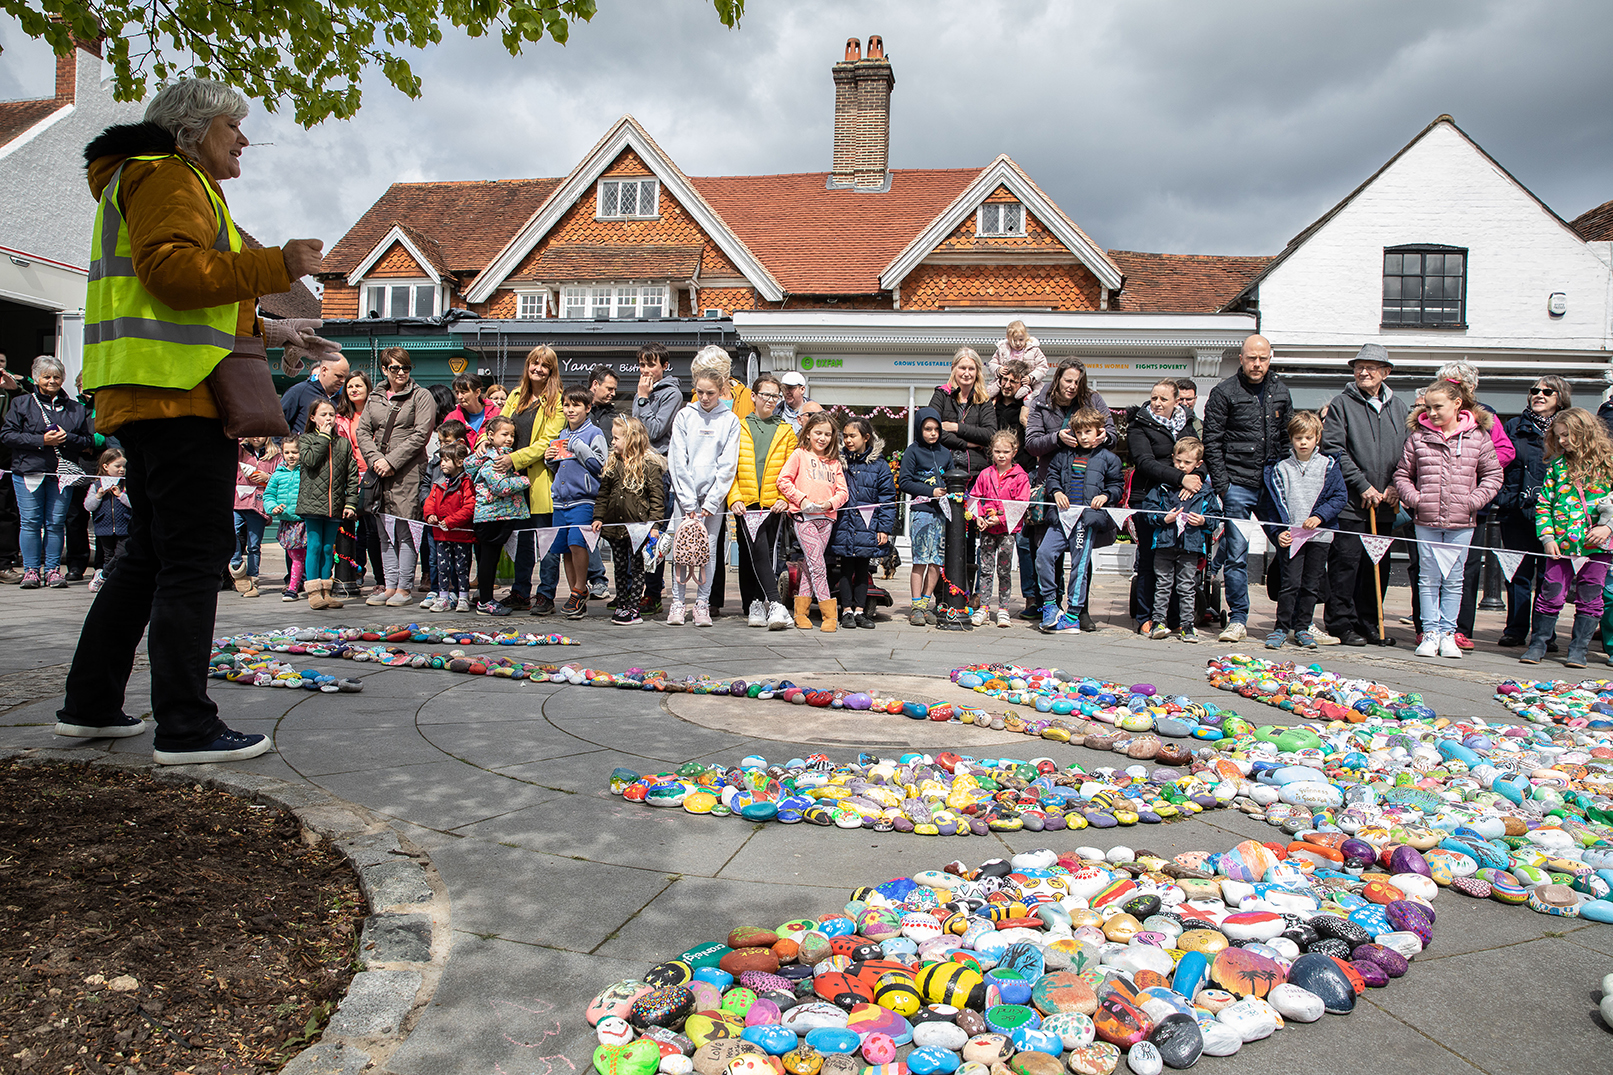 Cranleigh rocks into the record books with painted pebble display